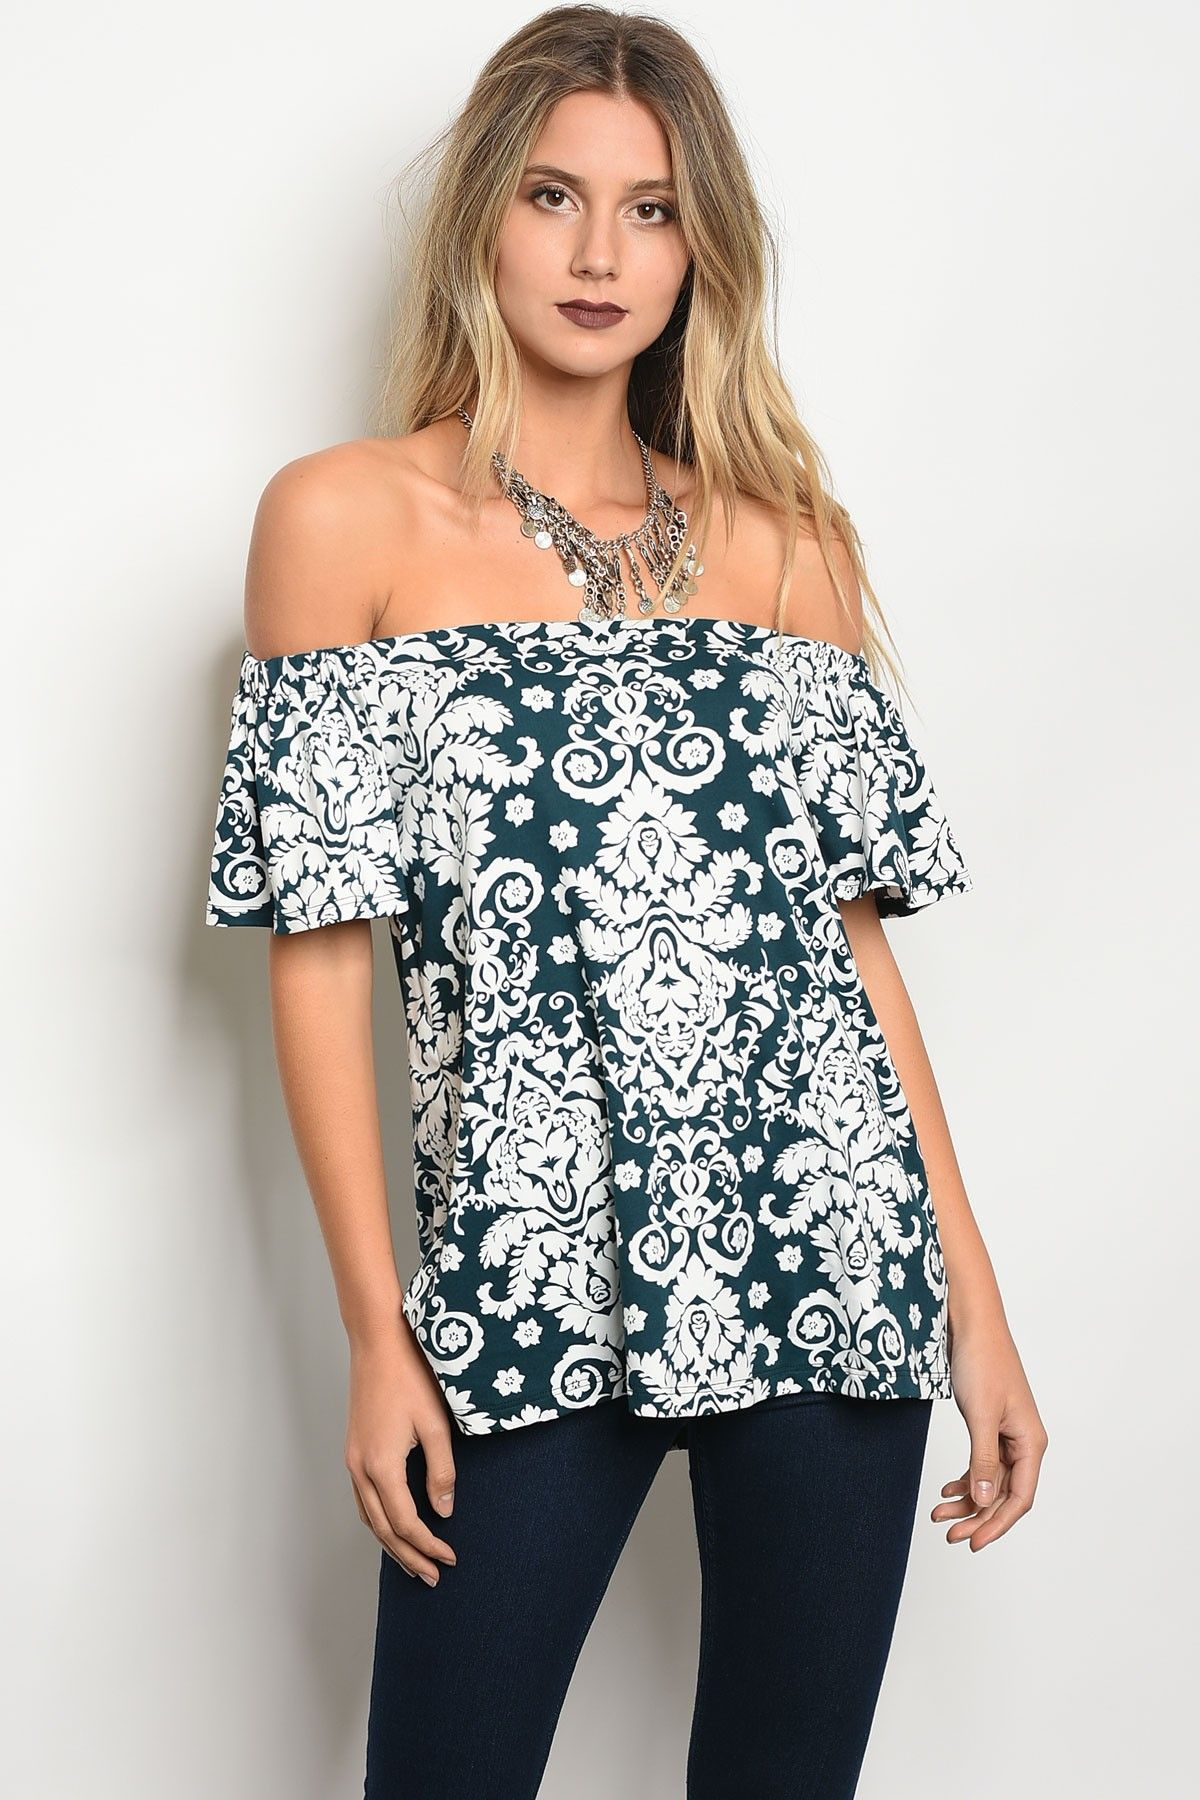 d44446a06fb76 Dark green 3 4 sleeve off the shoulder floral printed top - Earth Angels  Boutique